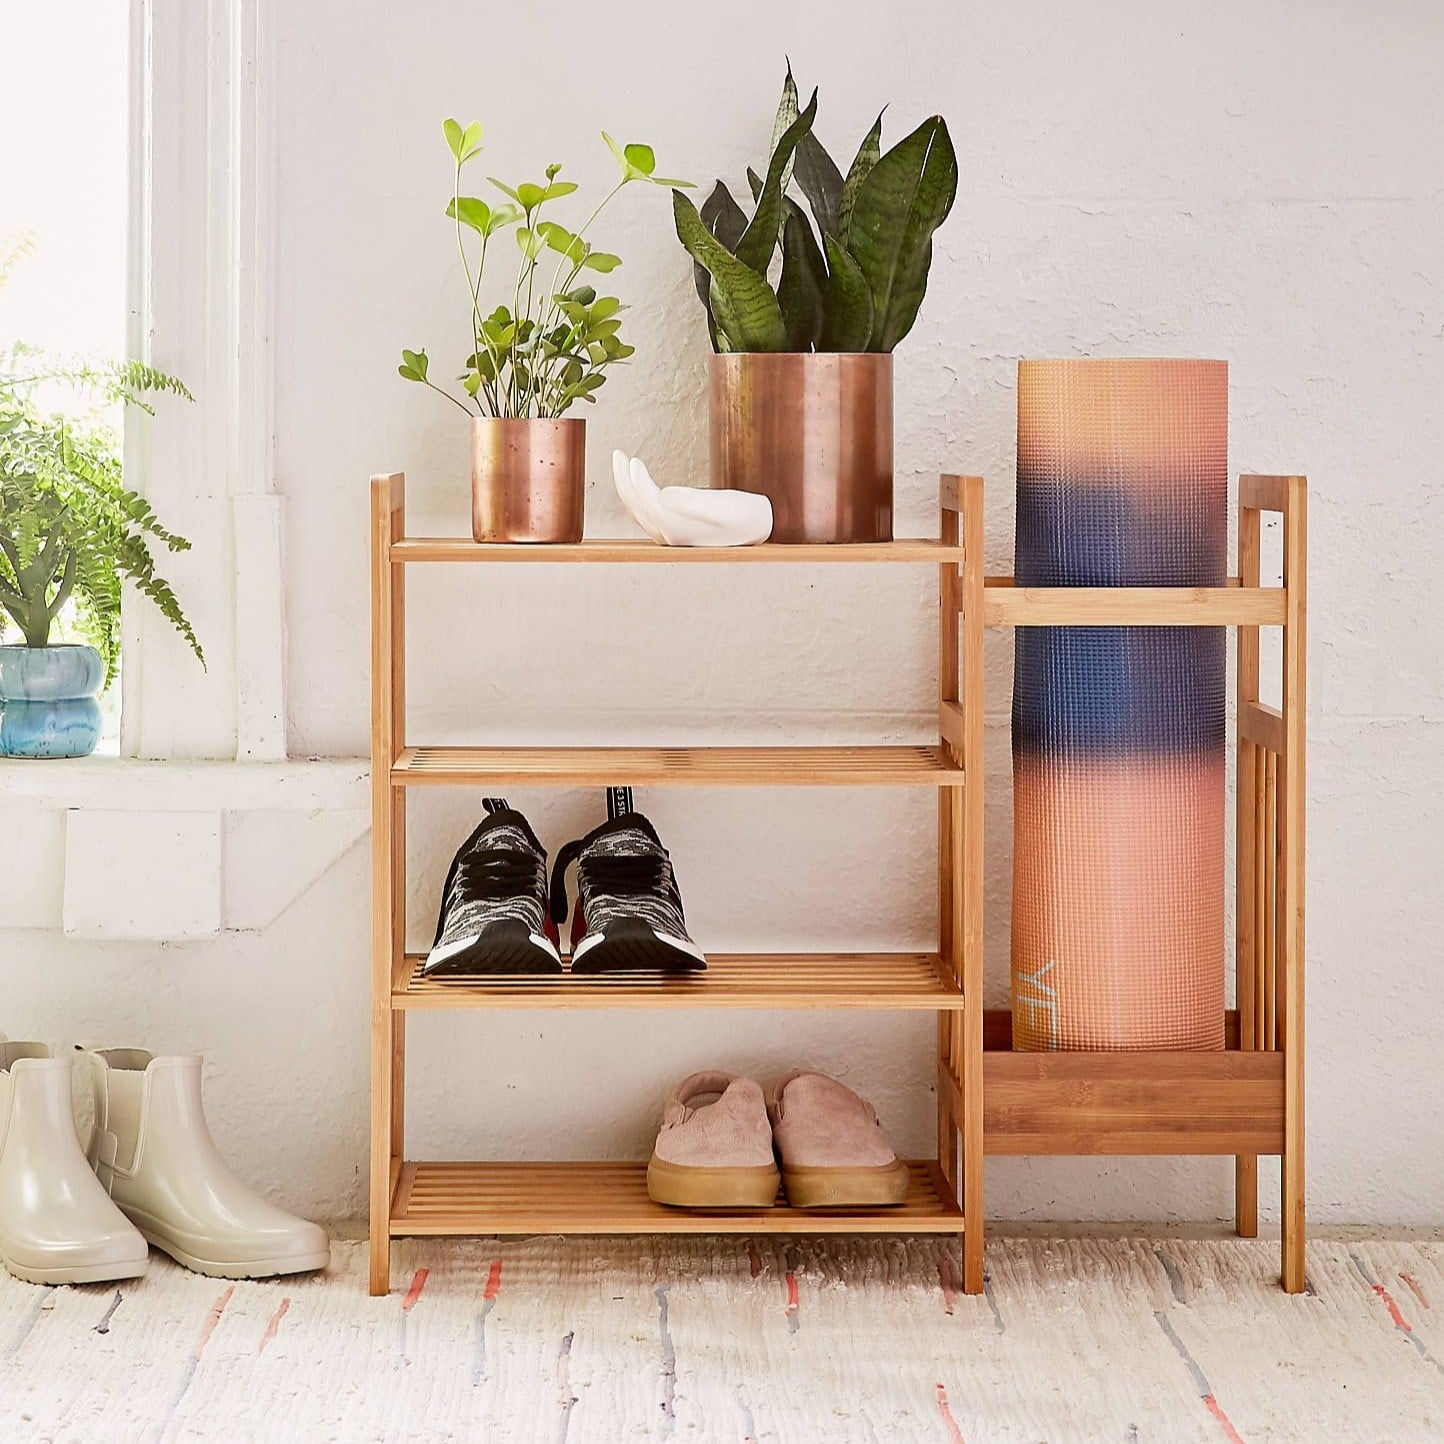 362f3b351b95 Best Home Items From Urban Outfitters 2019 | POPSUGAR Home